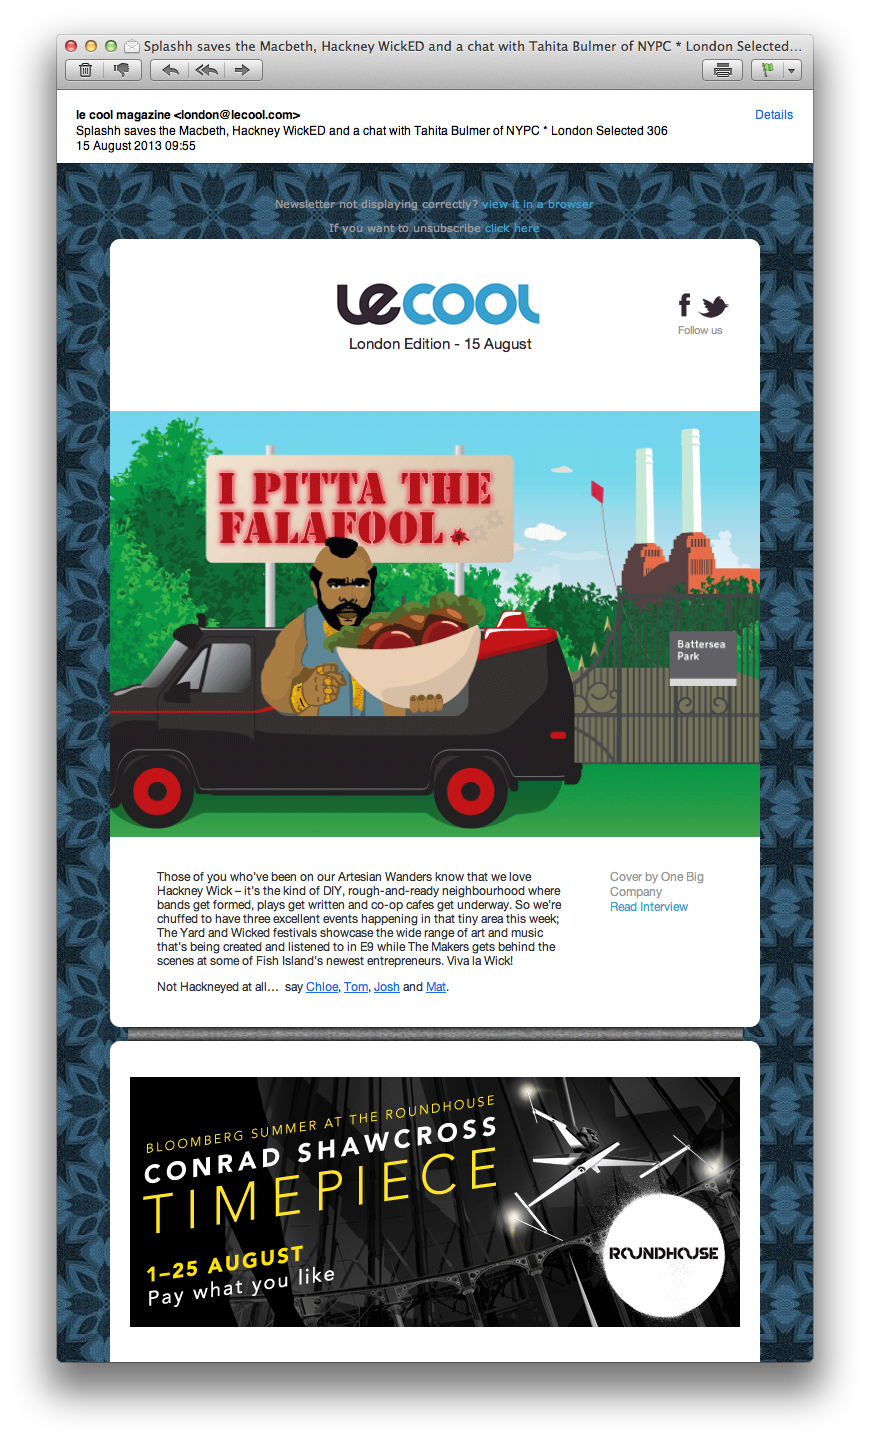 If you haven't received your copy of Le Cool this morning you've probably not seen the cover illustration we created for them - it's a homage to two of our favourite things, B.A. Baracus and food festivals. See it in all its glory and read our interview here http://london.lecool.com/inspirations/one-big-company